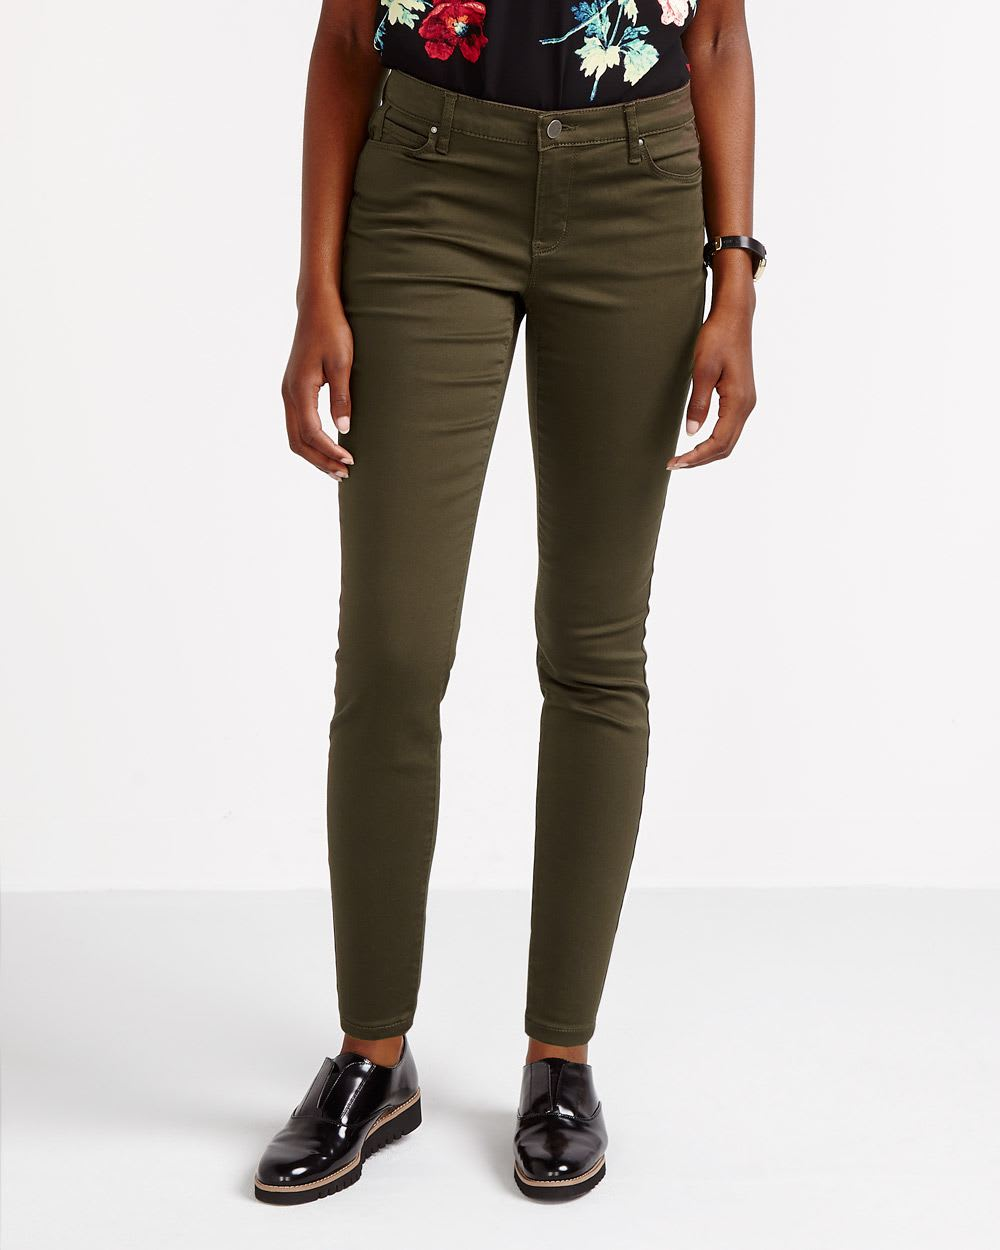 124a8a0593caa7 The Skinny Sculpting Jeans